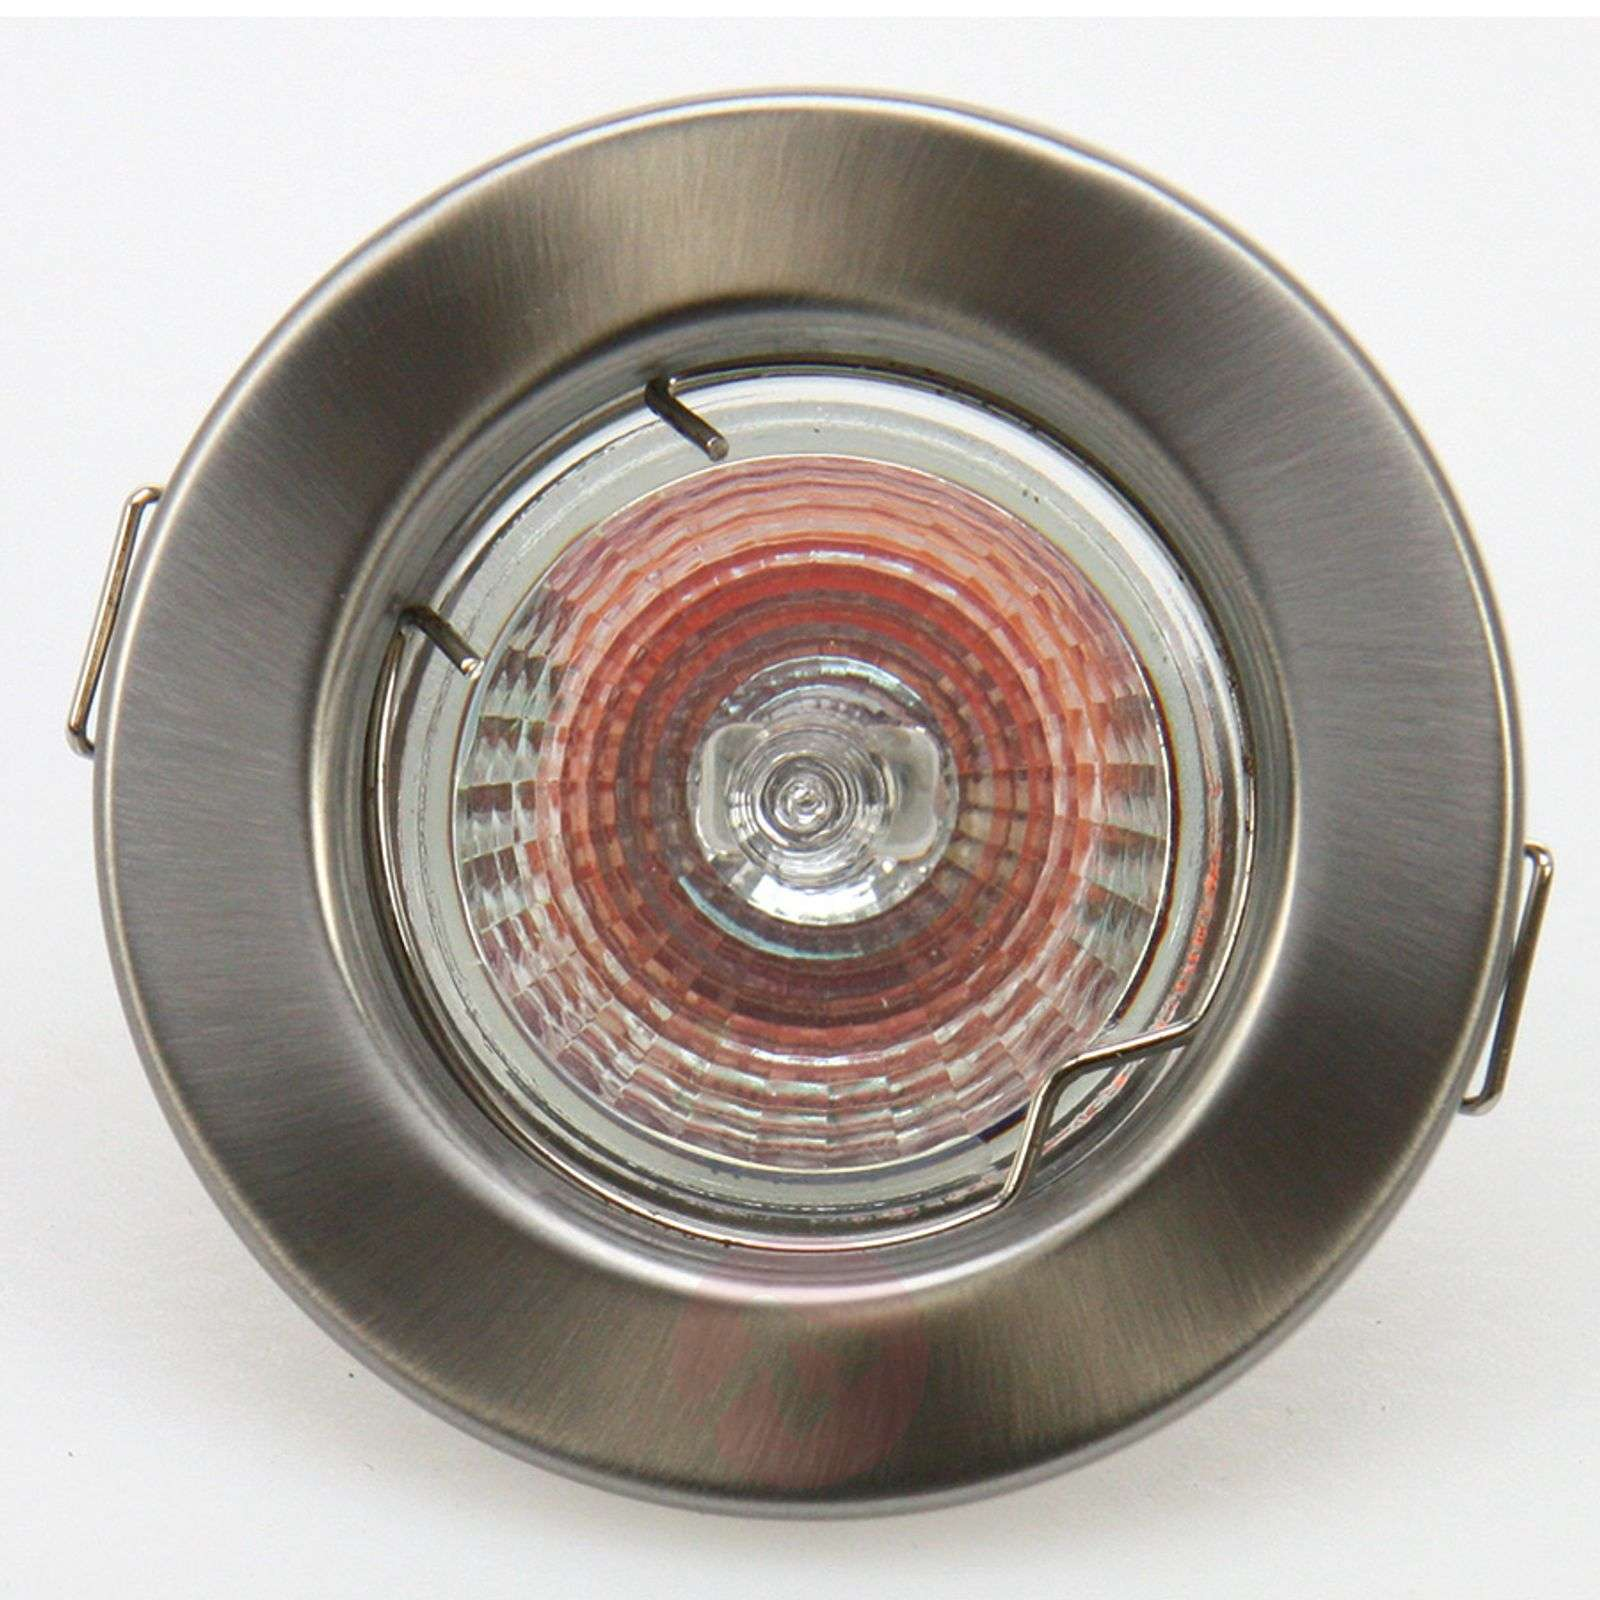 Low voltage recessed light stainless steel mr16 lights low voltage recessed light stainless steel mr16 9504107 01 aloadofball Images